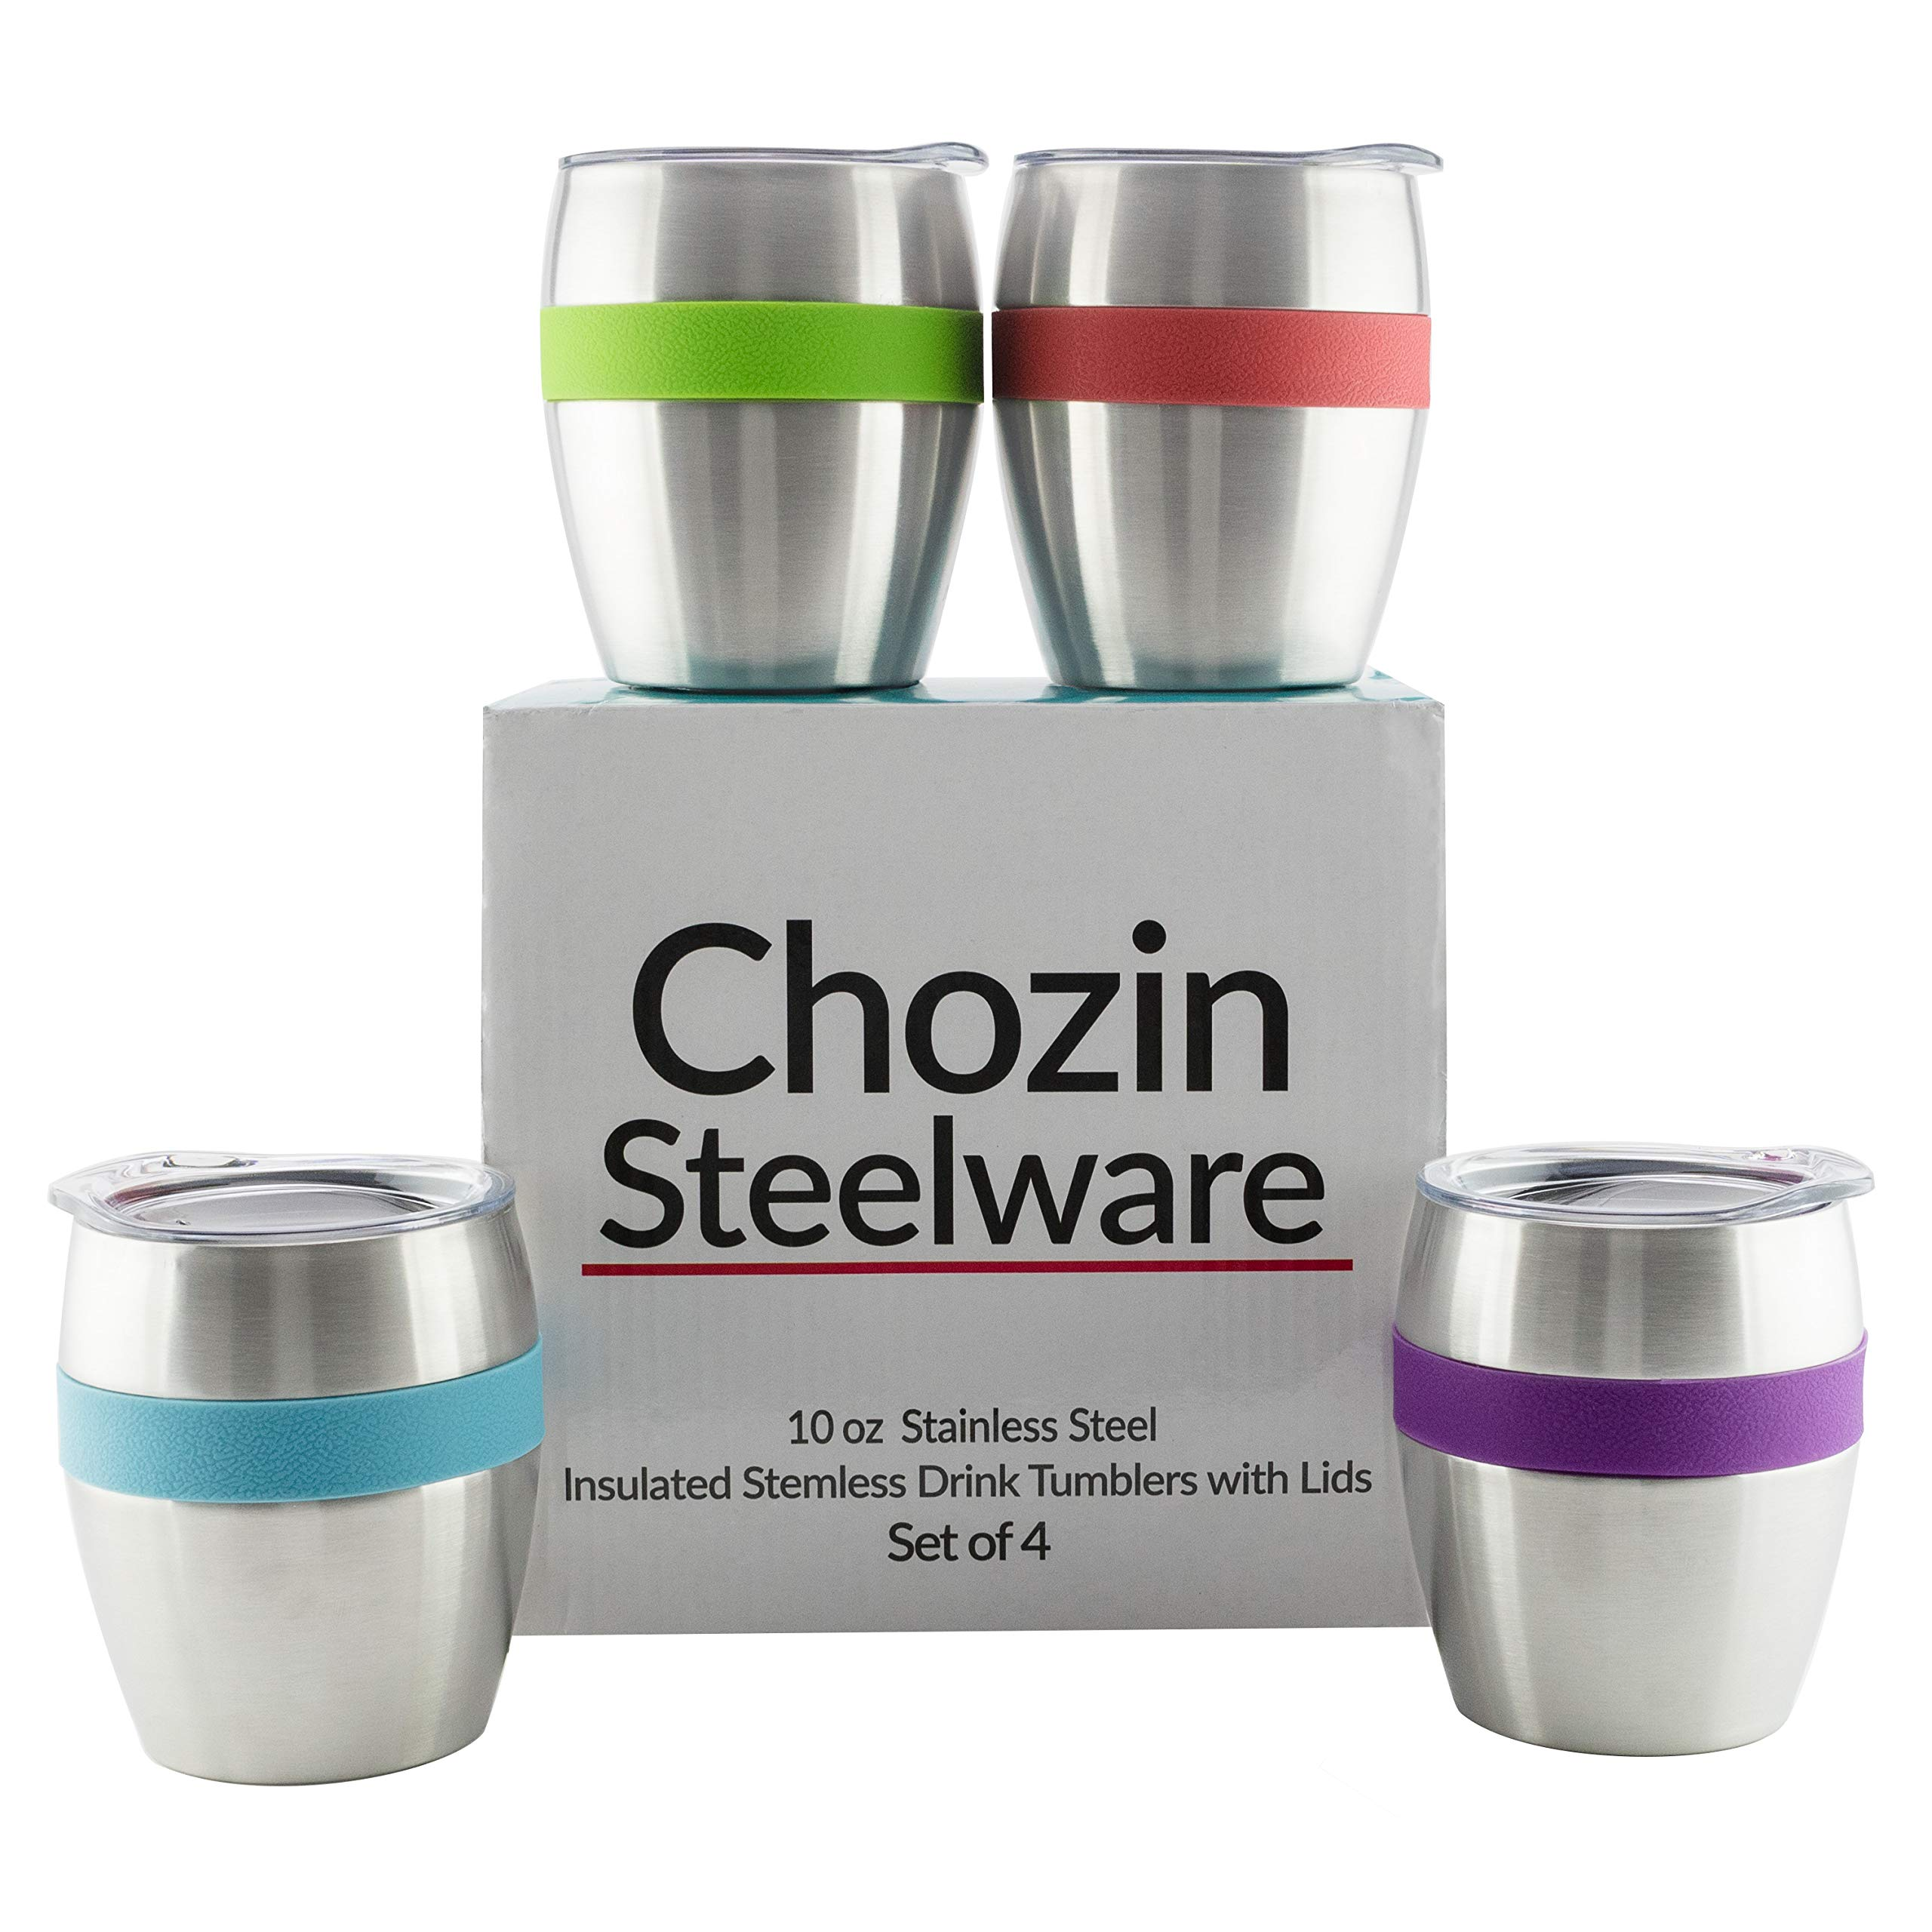 Stainless Steel Wine Glasses with Lids, Set of 4, Double Wall Insulated Stemless Wine and Drink Tumblers with Spill-Resistant Lids with Built -in 4 Color Comfort Grips by Chozin Steelware (Image #1)